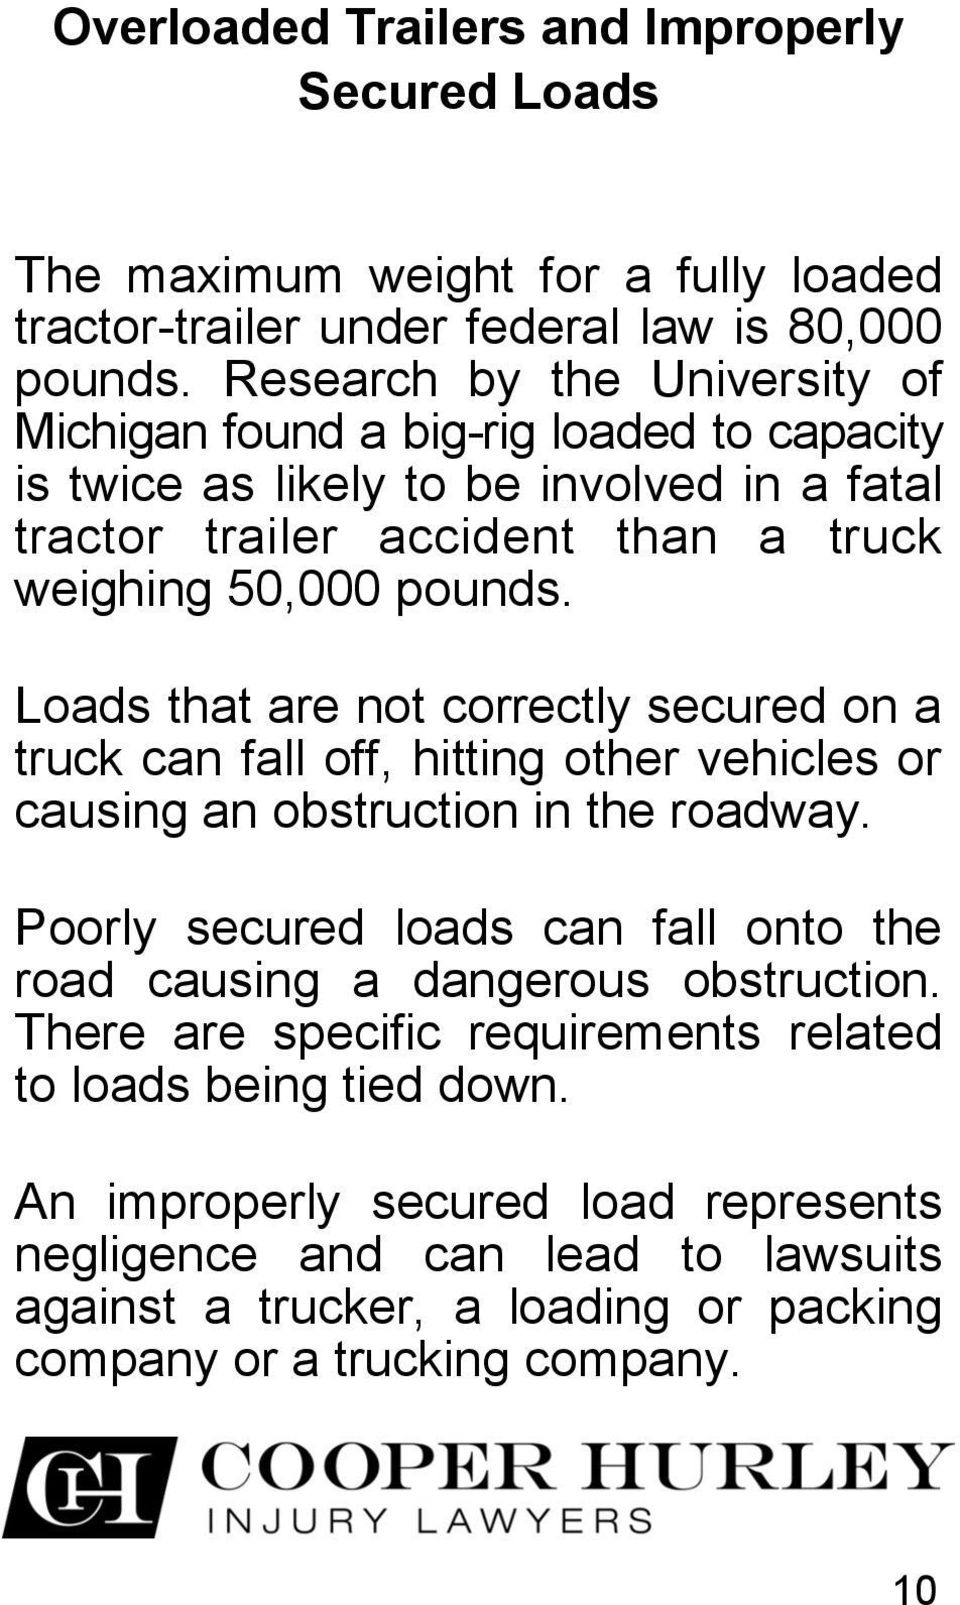 Loads that are not correctly secured on a truck can fall off, hitting other vehicles or causing an obstruction in the roadway.